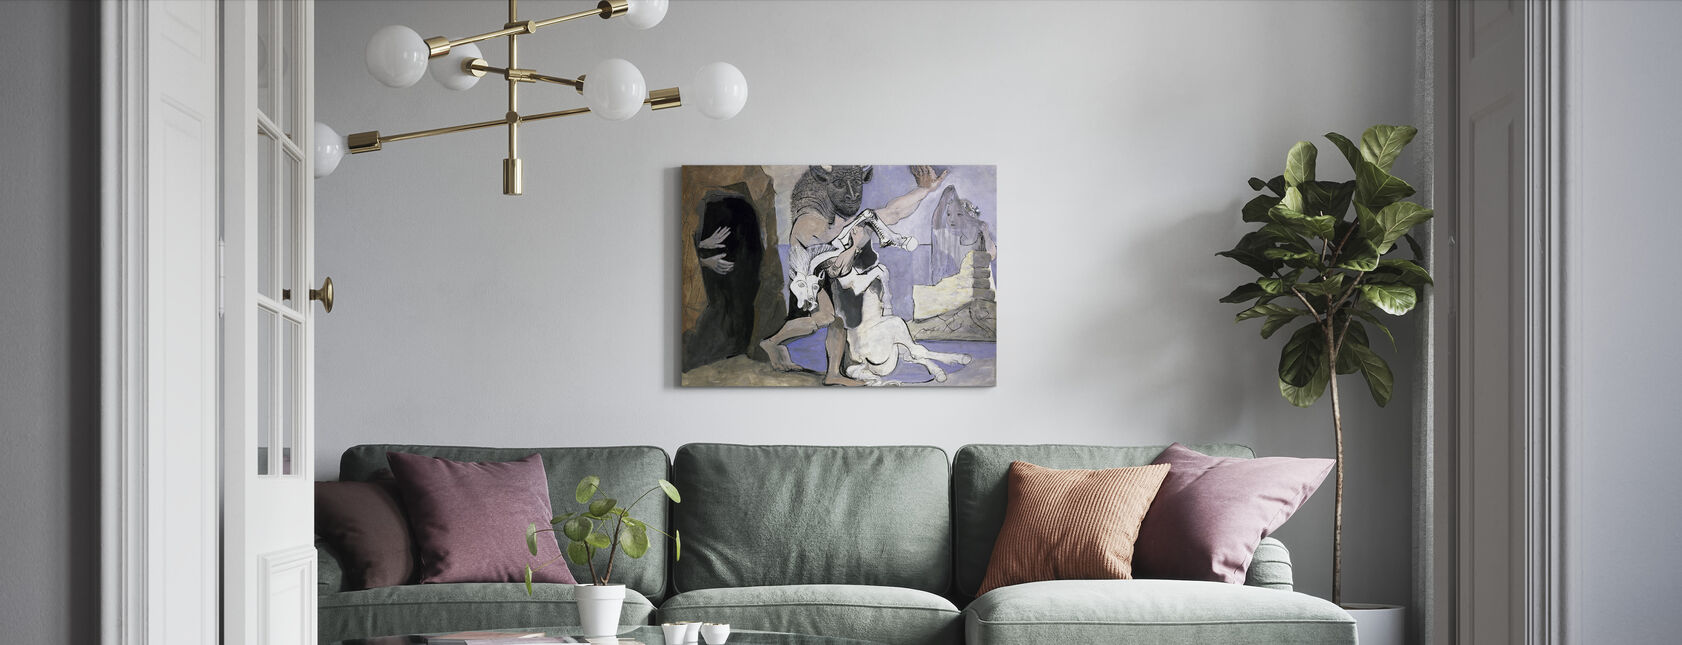 Minotaur and Dead Mare - Pablo Picasso - Canvas print - Living Room